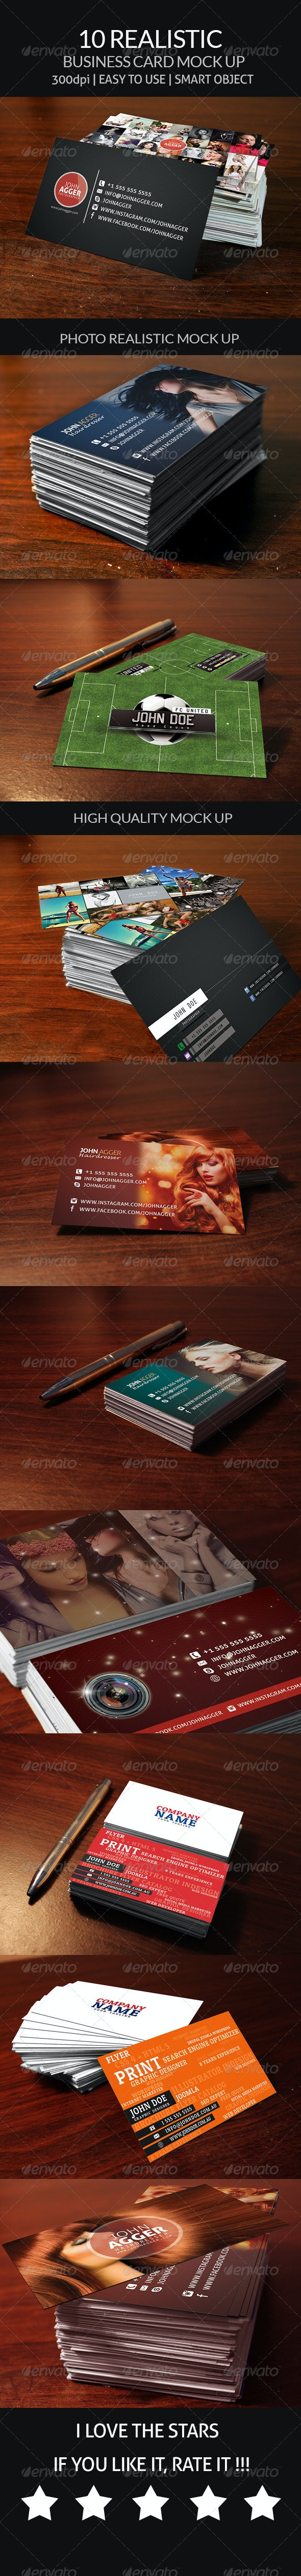 10 Realistic Business Card Mock Up - Business Cards Print